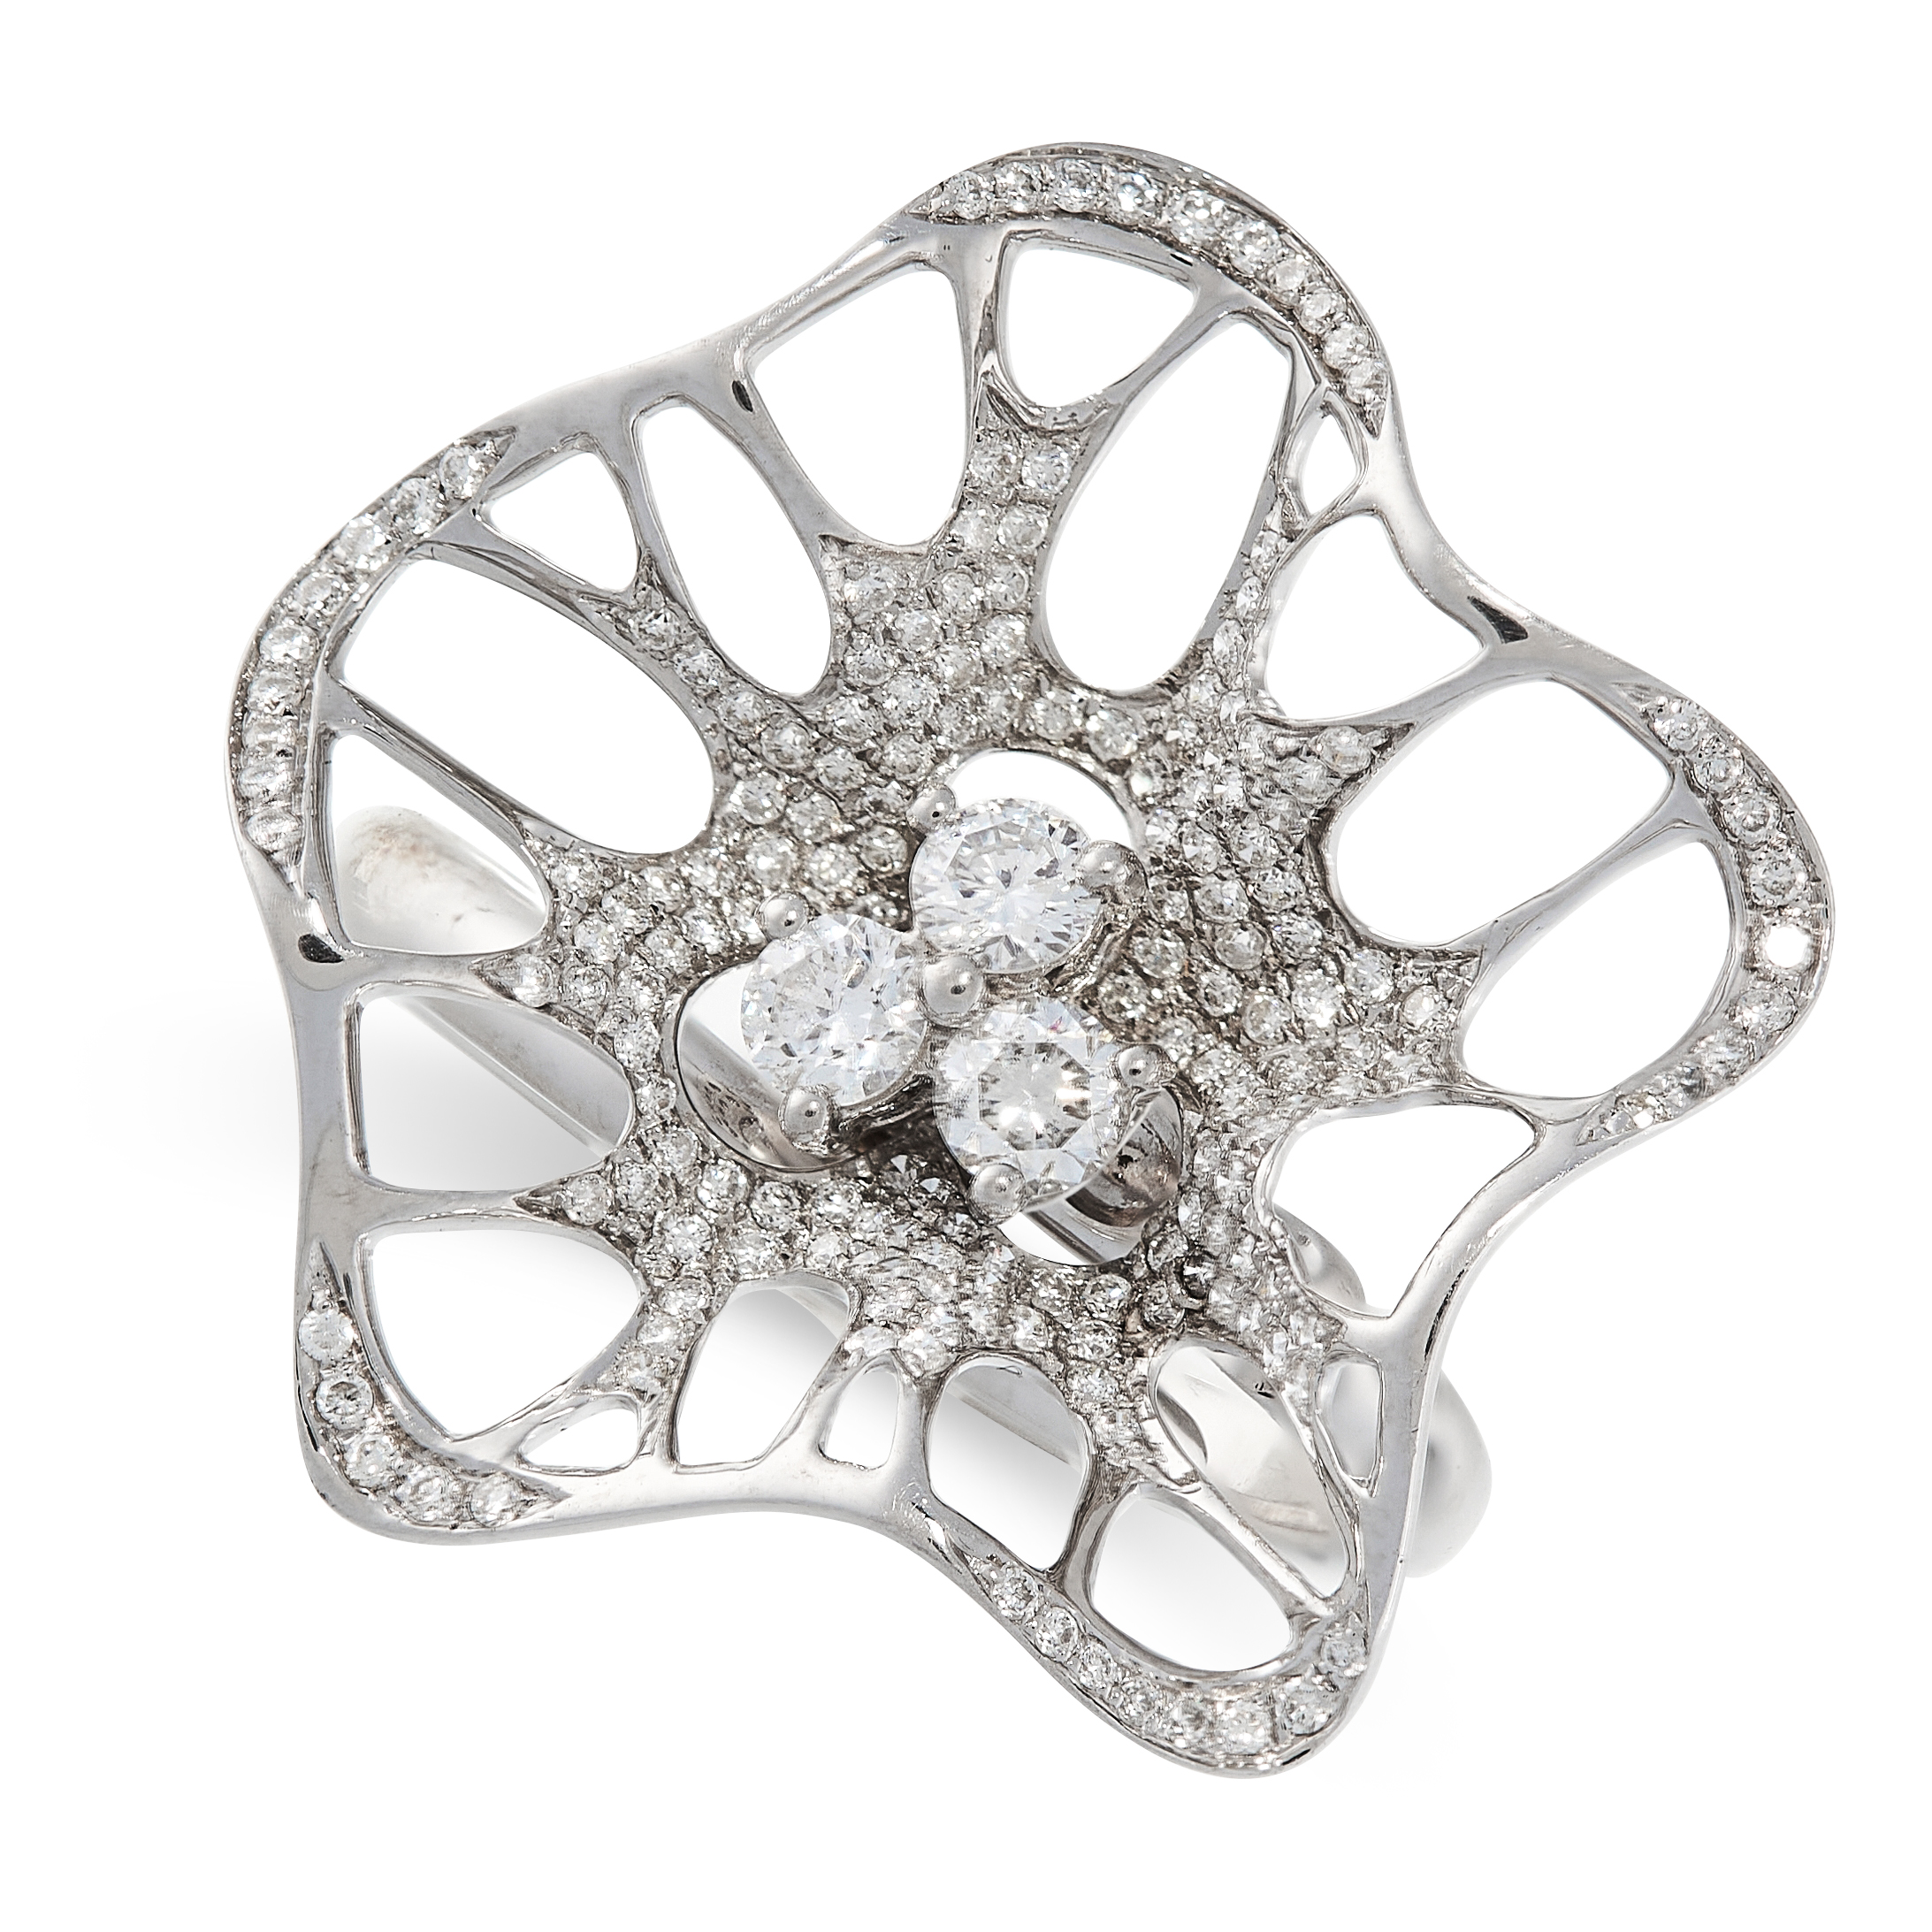 A DIAMOND RING in 18ct white gold, designed as an abstract flower, set with a central trio of